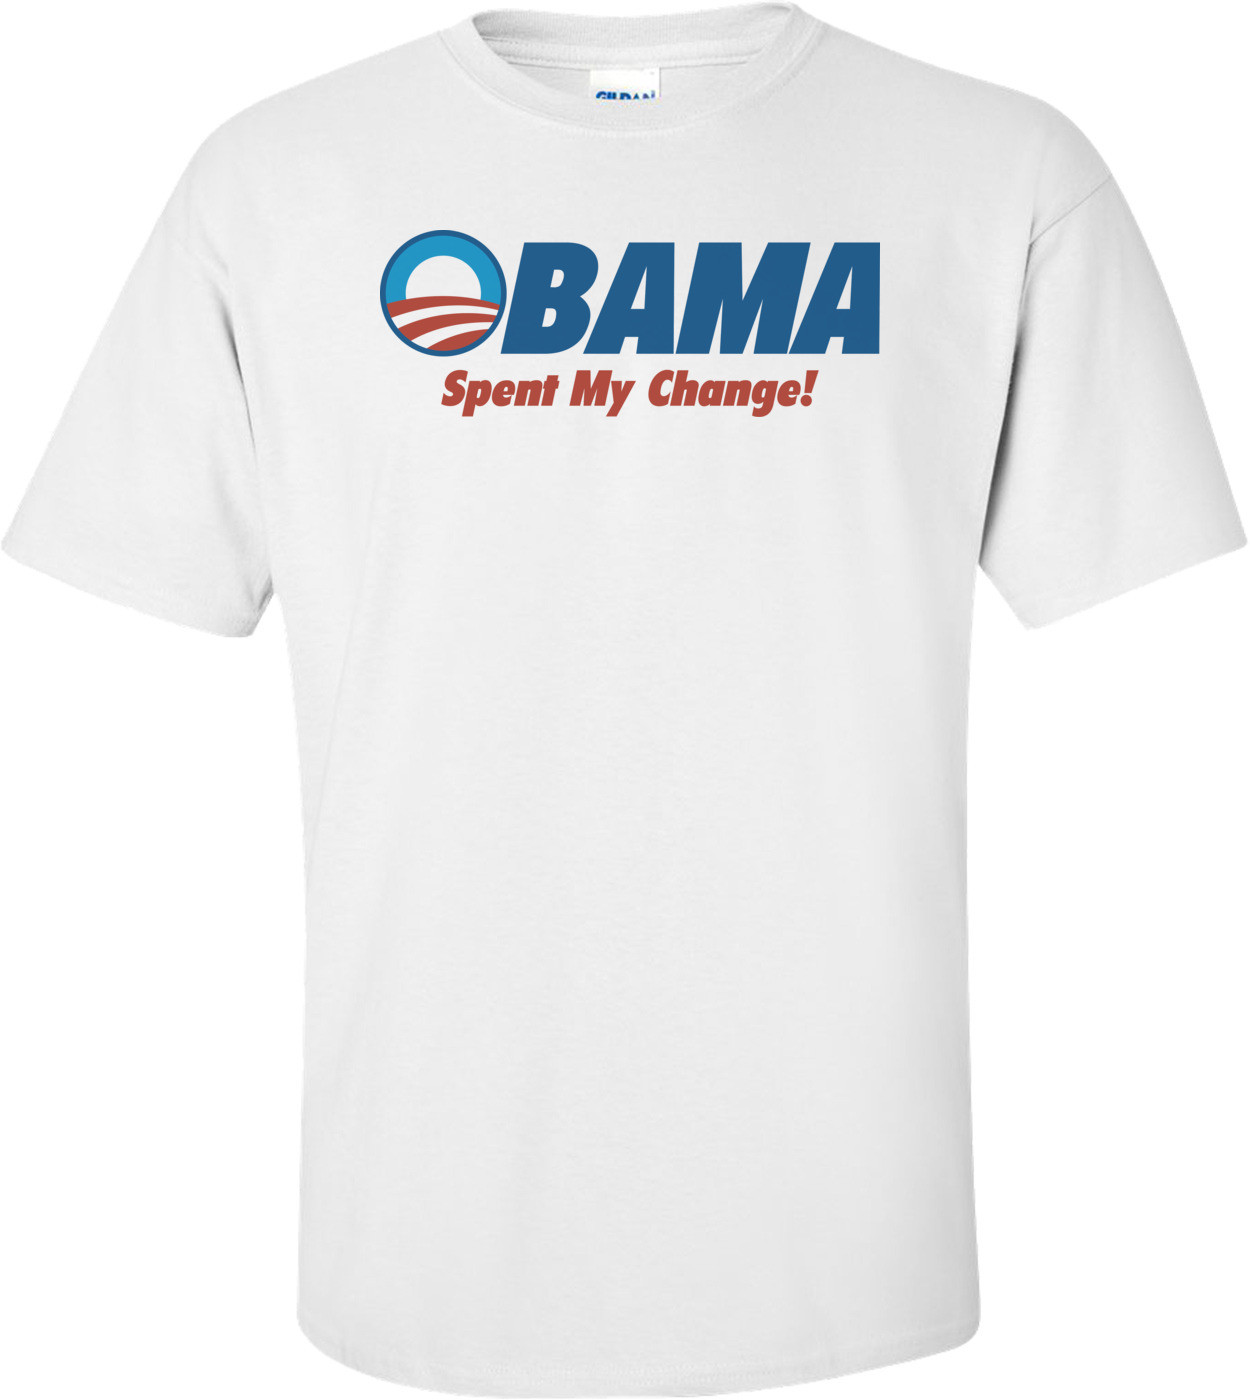 Obama Spent My Change Anti-obama T-shirt